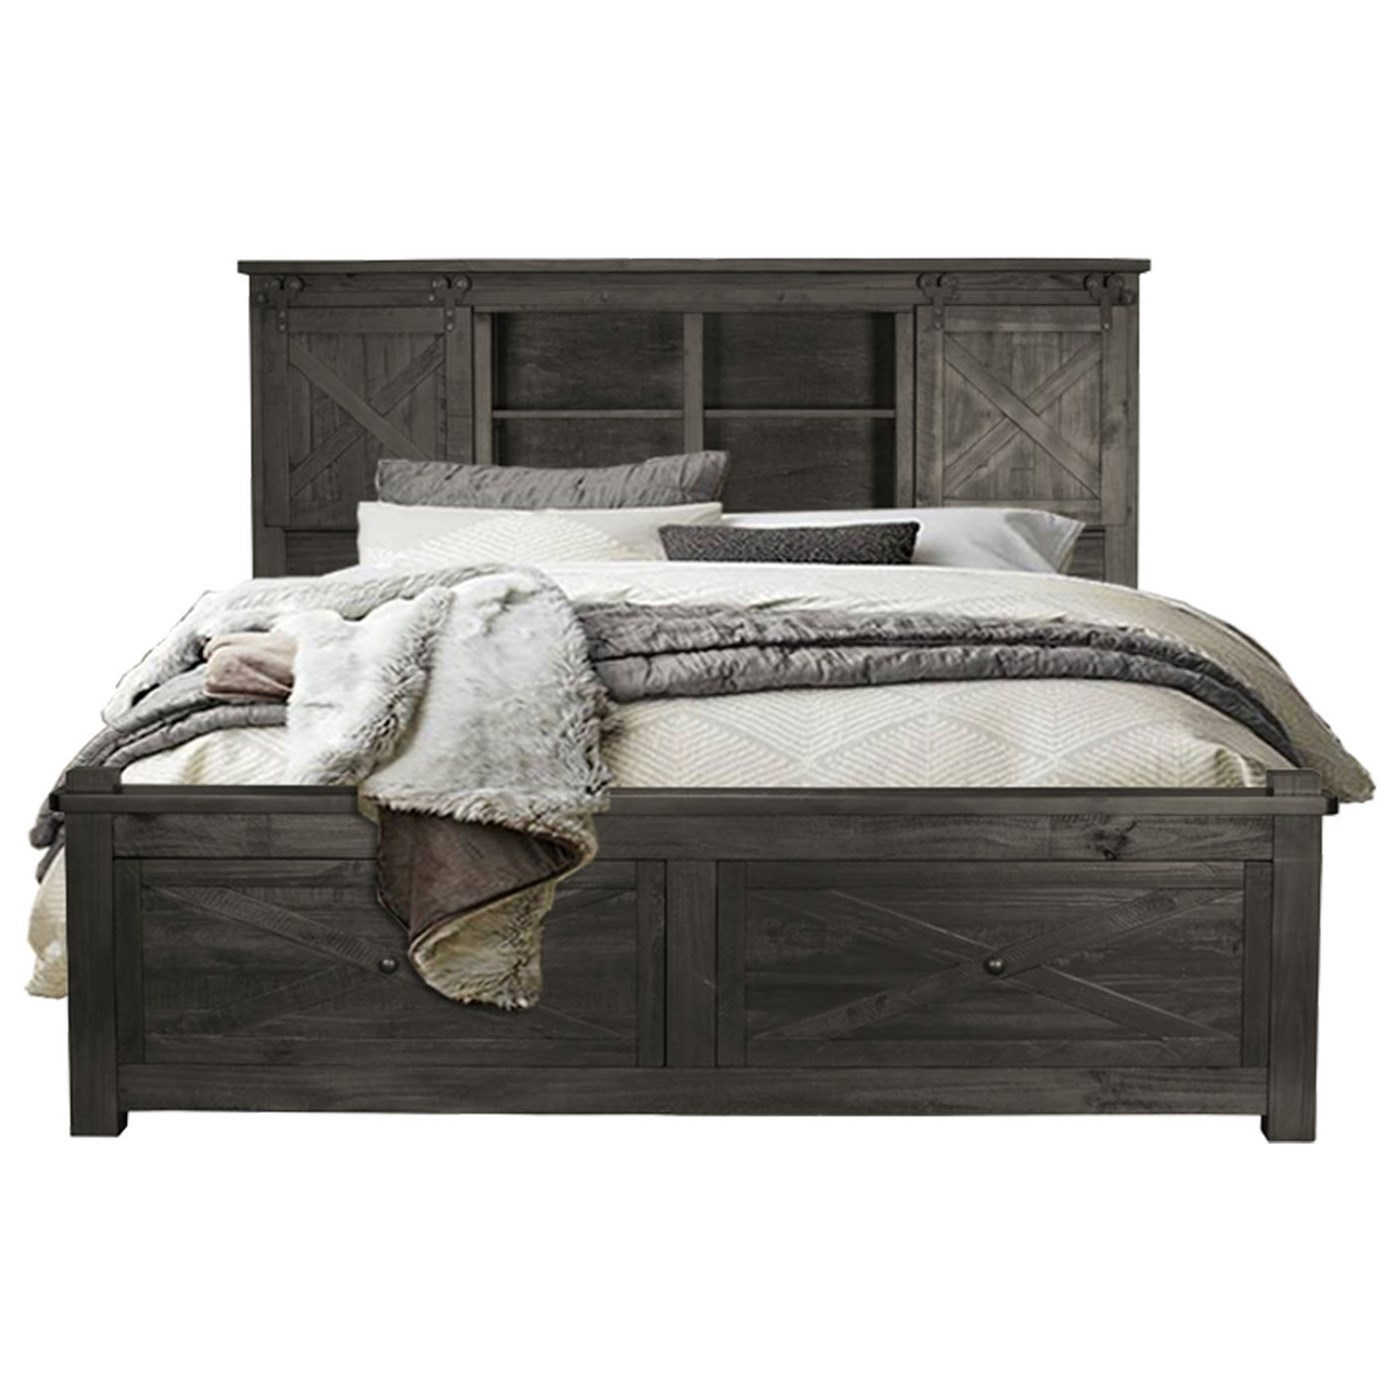 Aamerica Sun Valley Queen Bookcase Bed With Footboard Storage Zak S Home Panel Beds